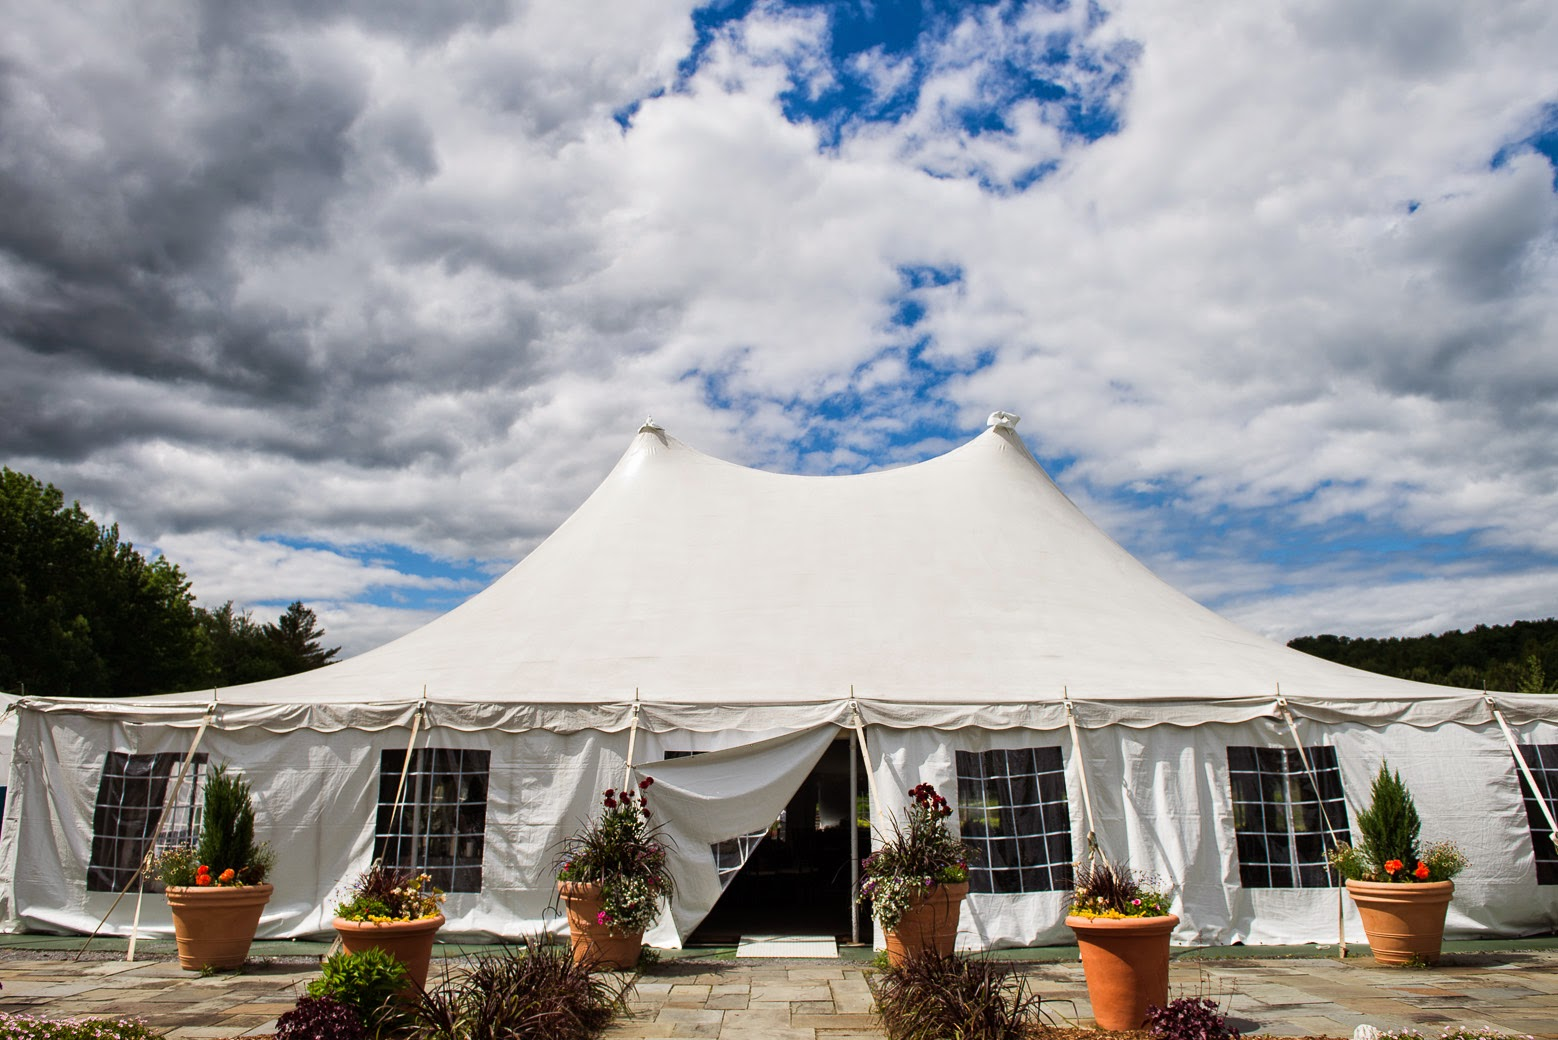 ... to Vermont Tent for all the other gorgeous surrounding the flowers to Nicole and Topnotch Resort and Spa for their incredible spot Chris at Photobooth ... & Two House Photo: Lindsey u0026 Erik: Topnotch Stowe VT: summer ...